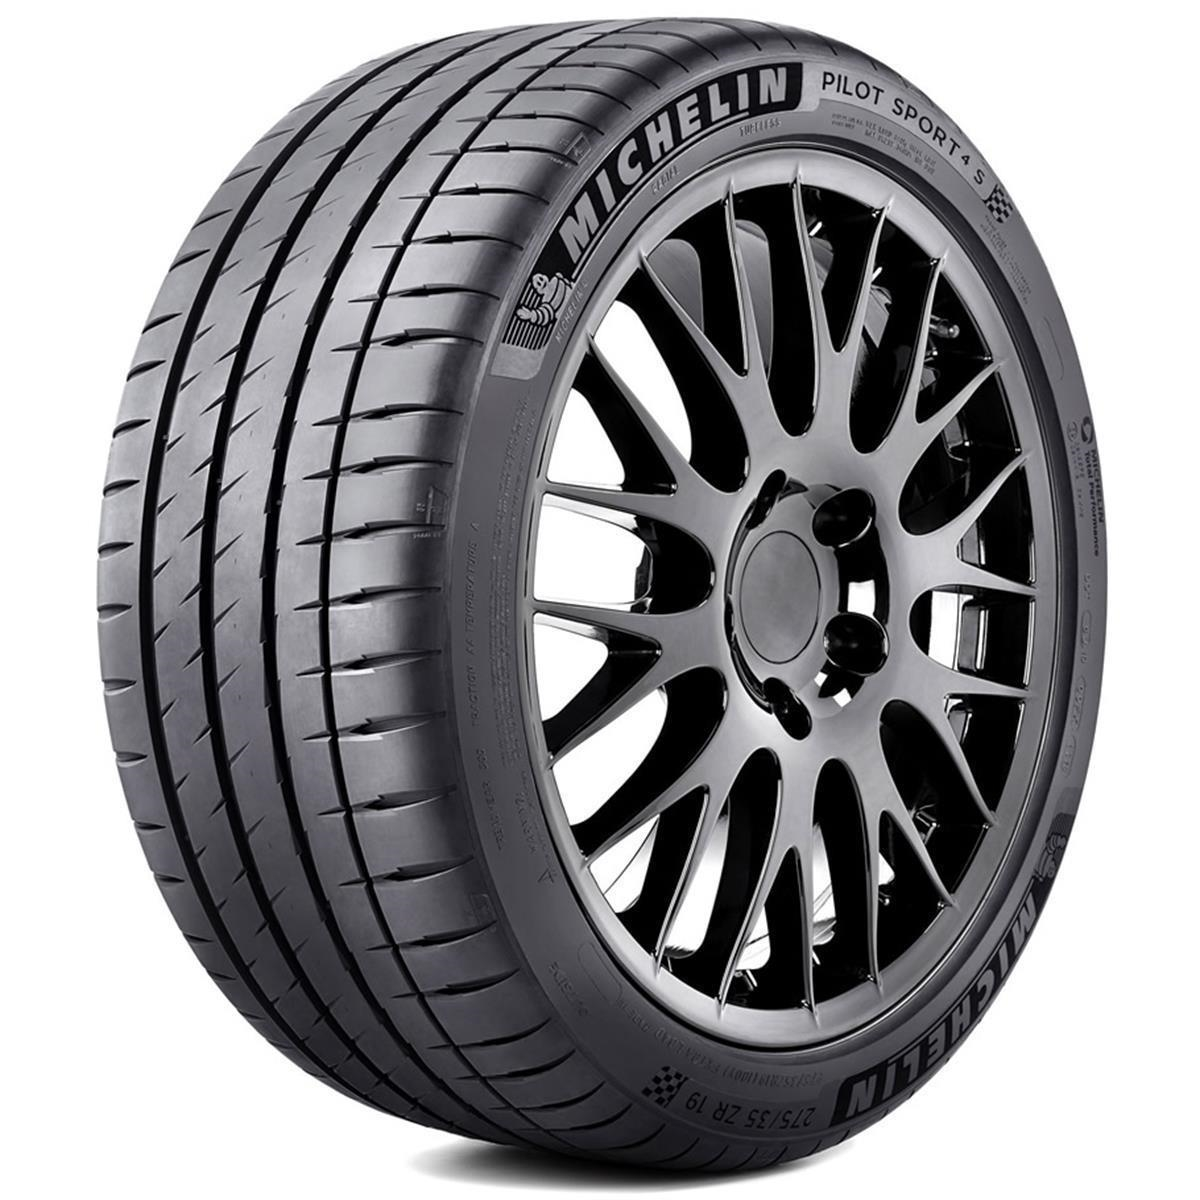 PNEU 265/35-20 99Y PILOT SUPER SPORT MICHELIN